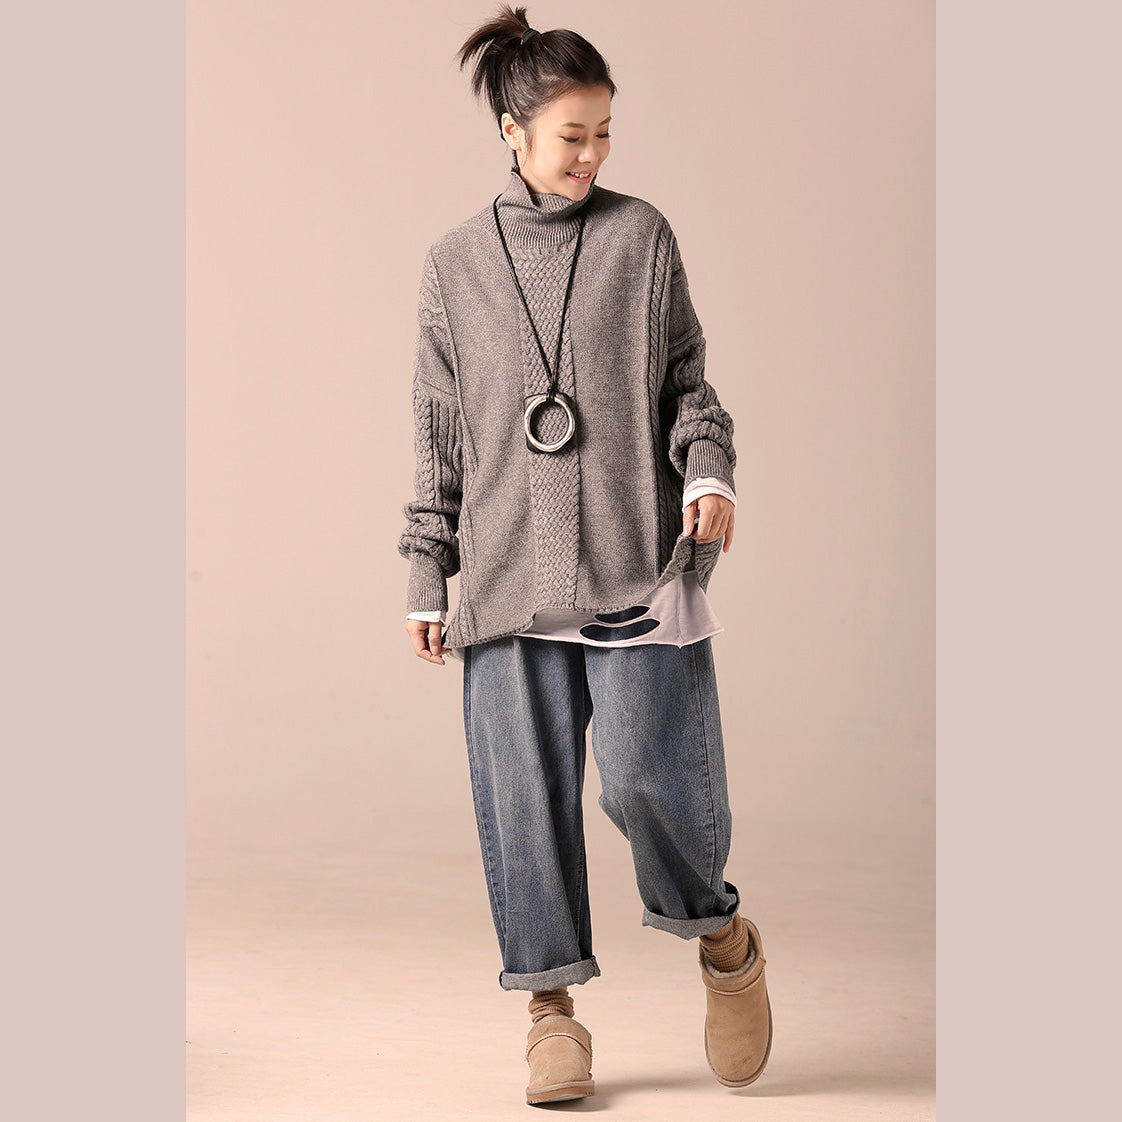 34c8b1de4c8 Cozy cotton Sweater outfit Quotes high neck gray Hipster knit top spring  cable ...